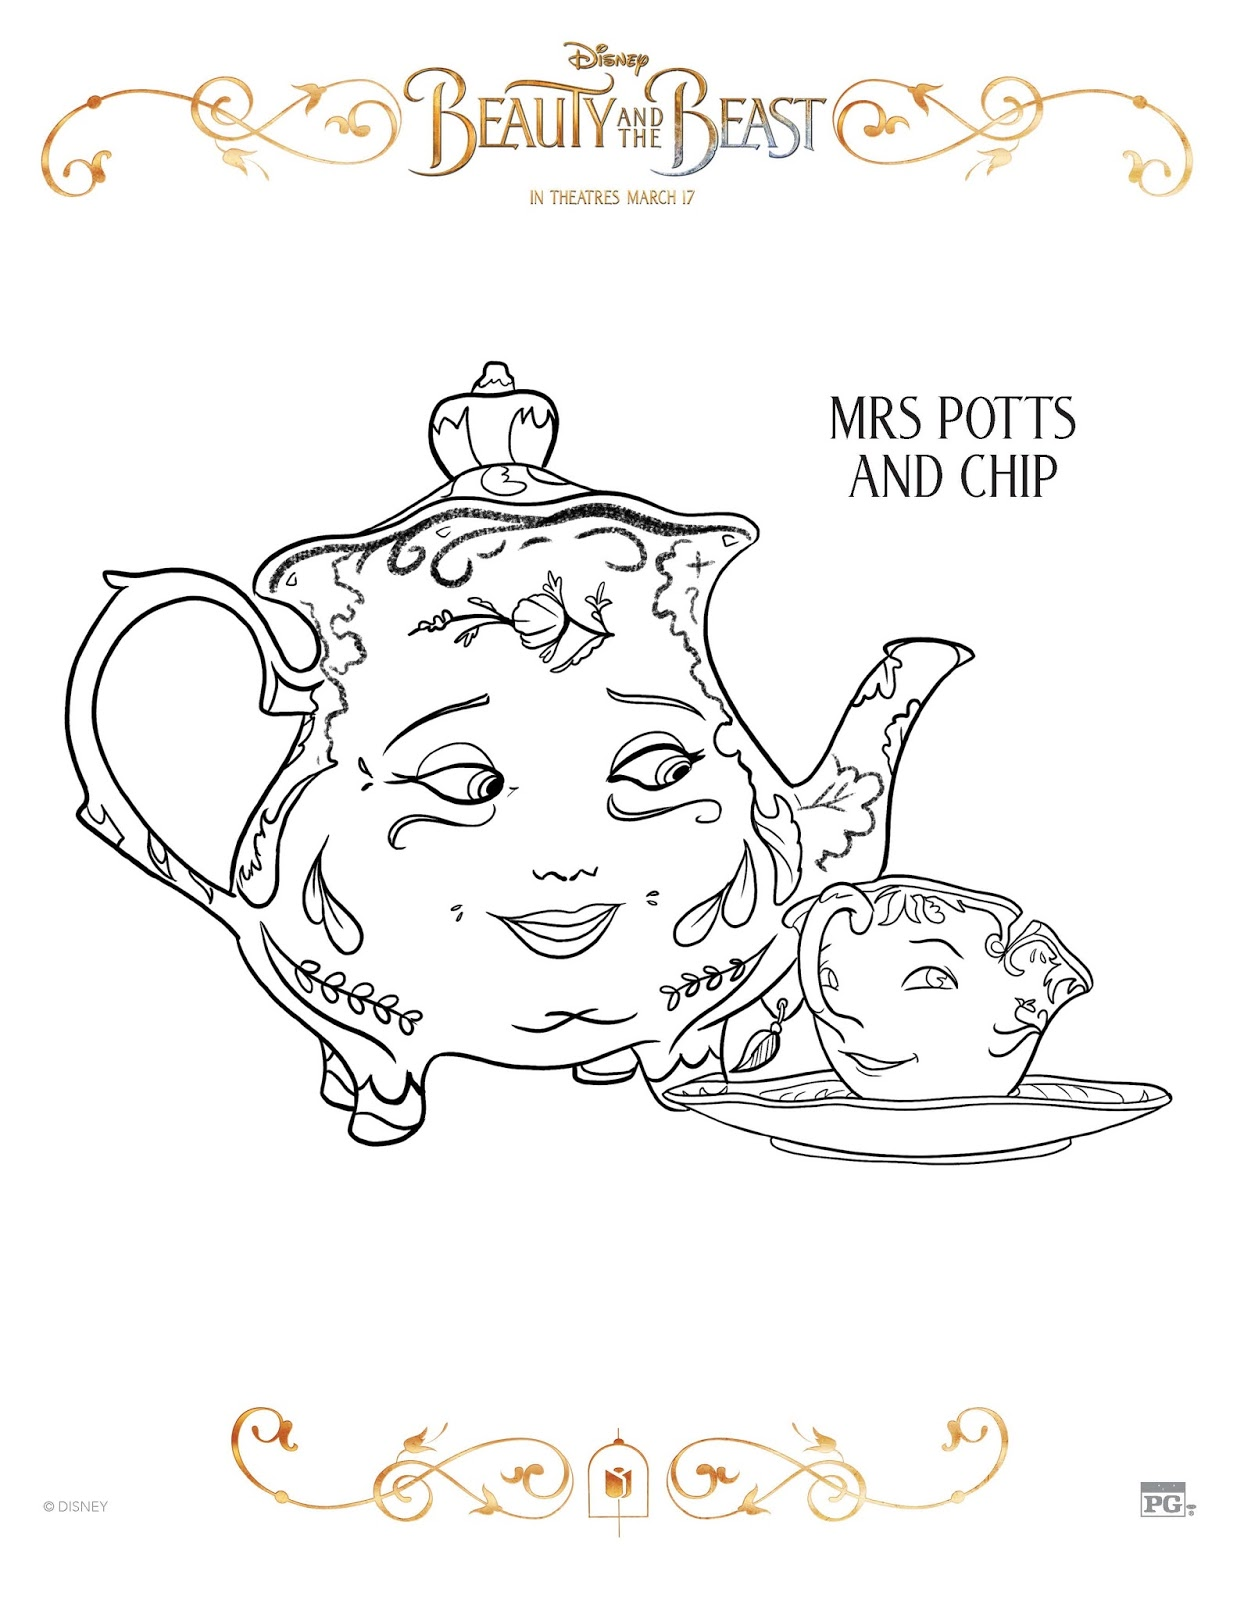 FREE BEAUTY AND THE BEAST COLORING SHEET ALSO VISIT Beauty And The Beast Party Printable